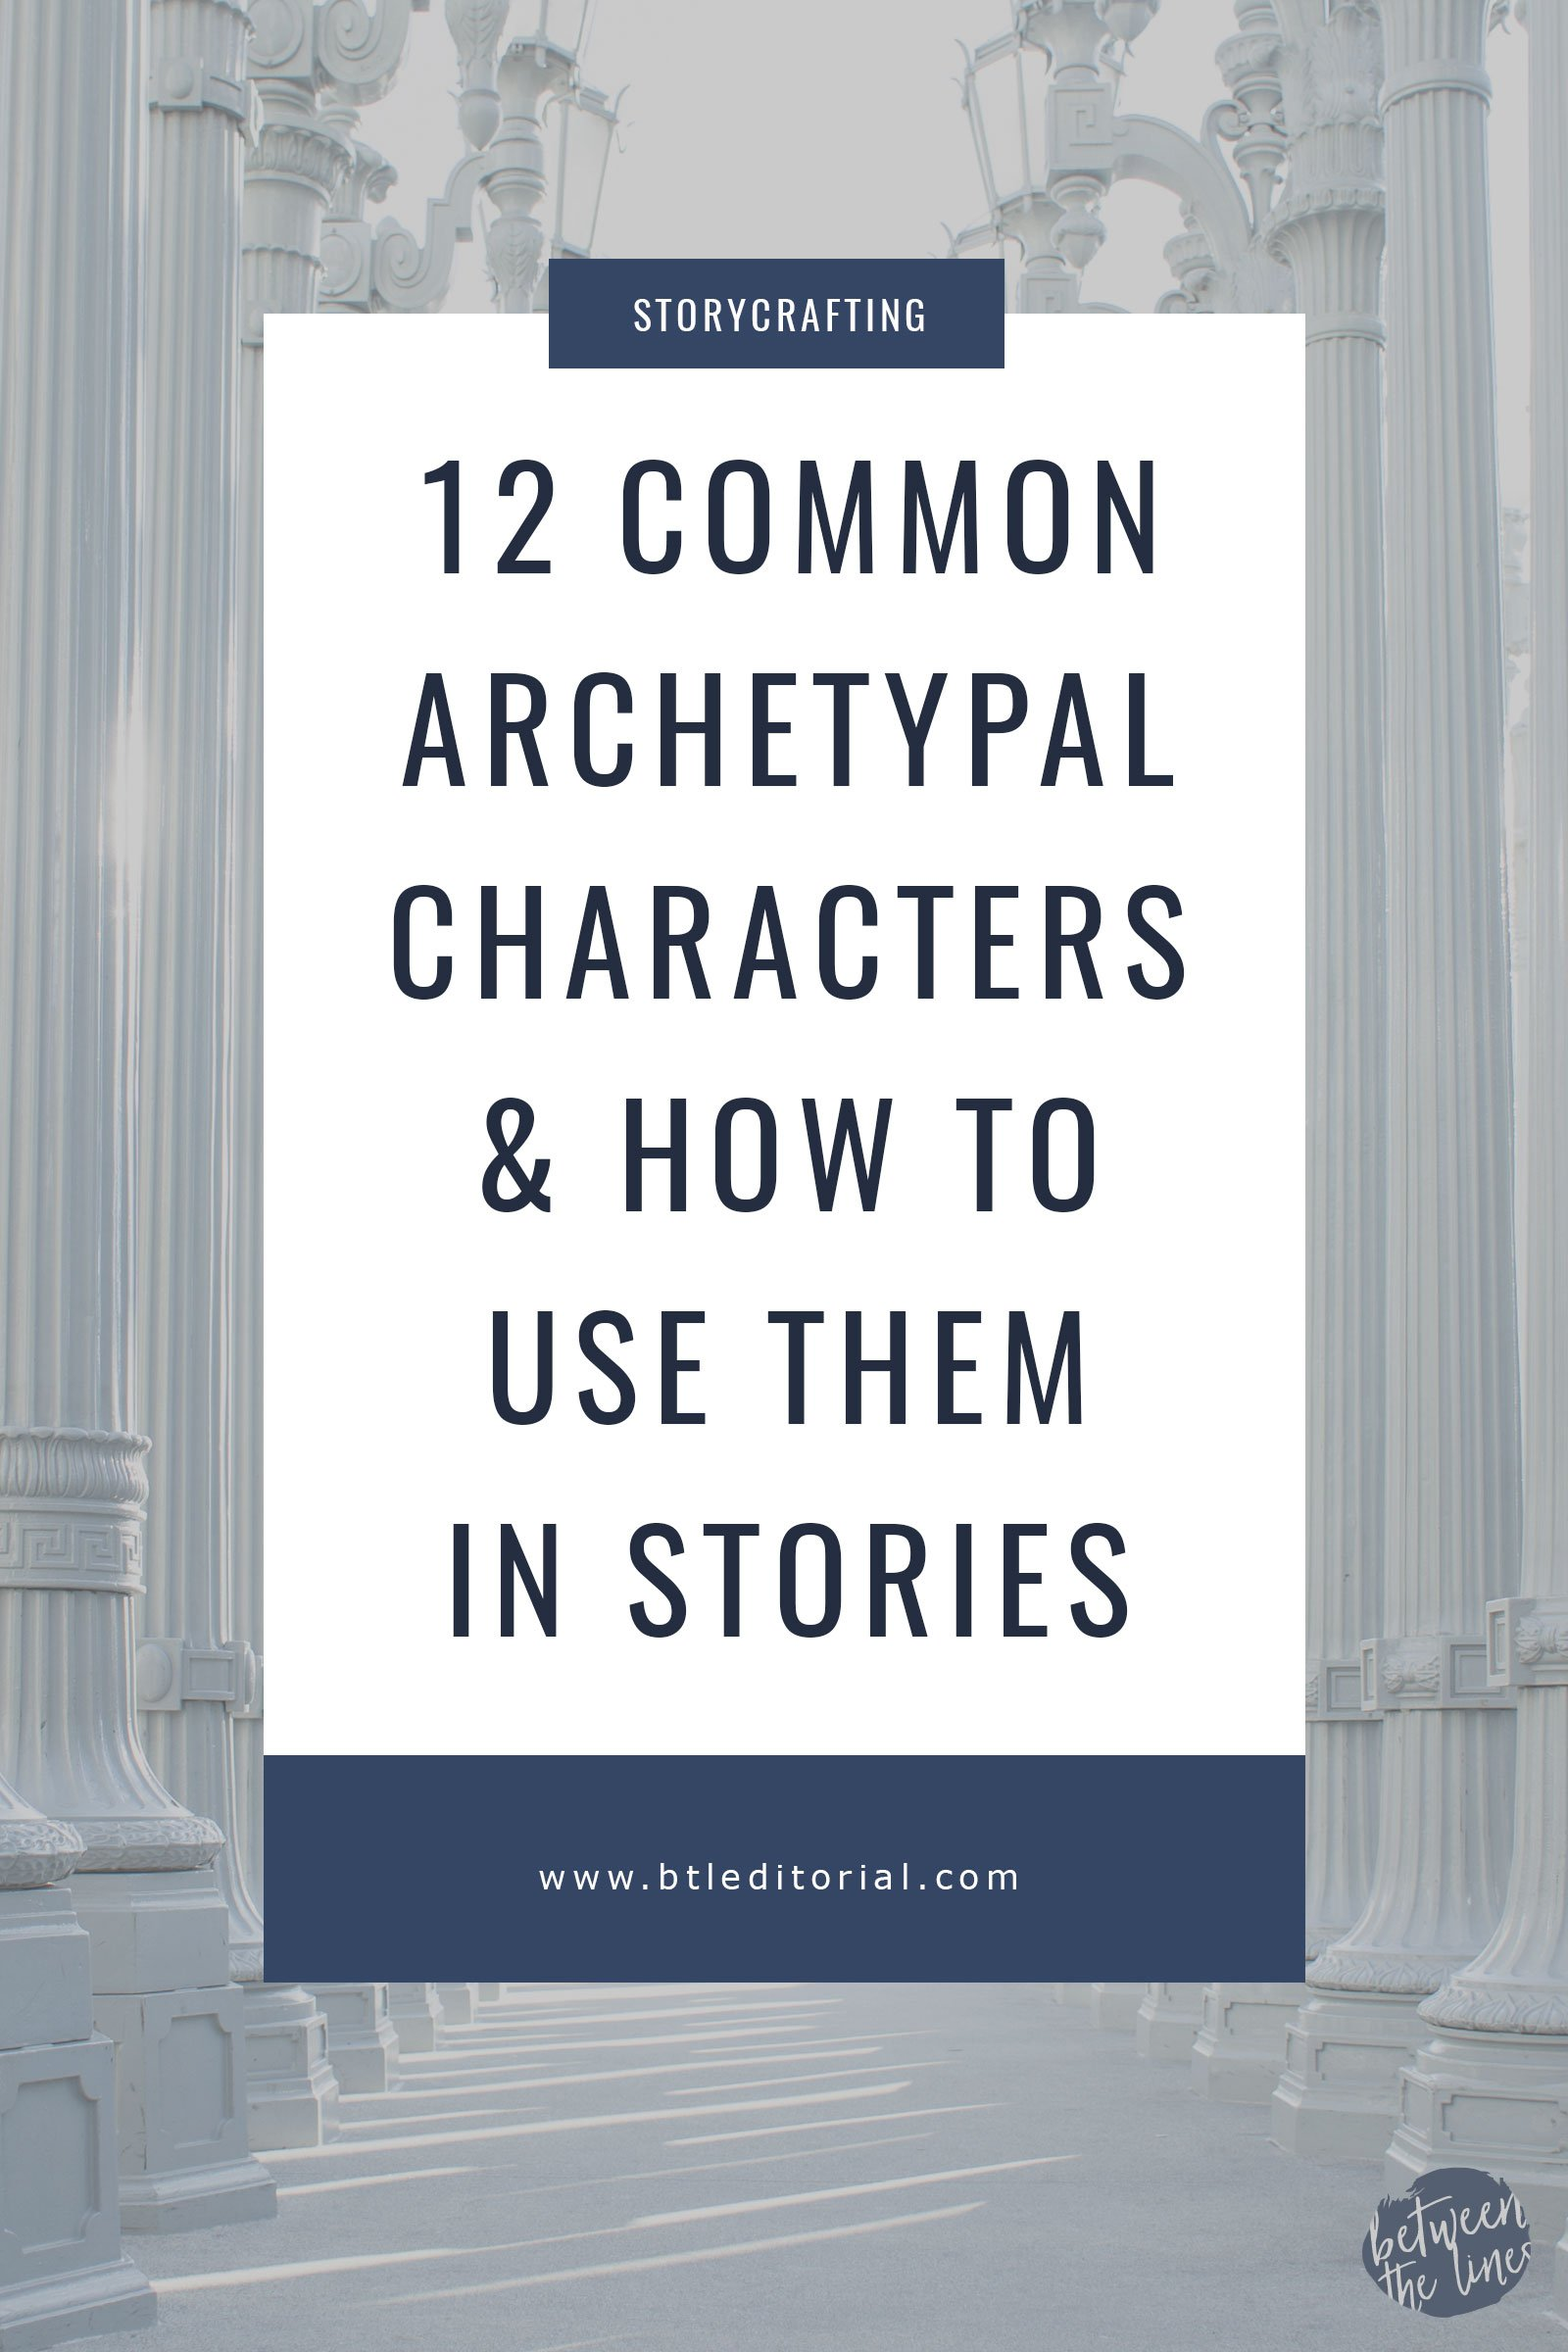 12 Common Archetypal Characters & How to Use Them in Storytelling